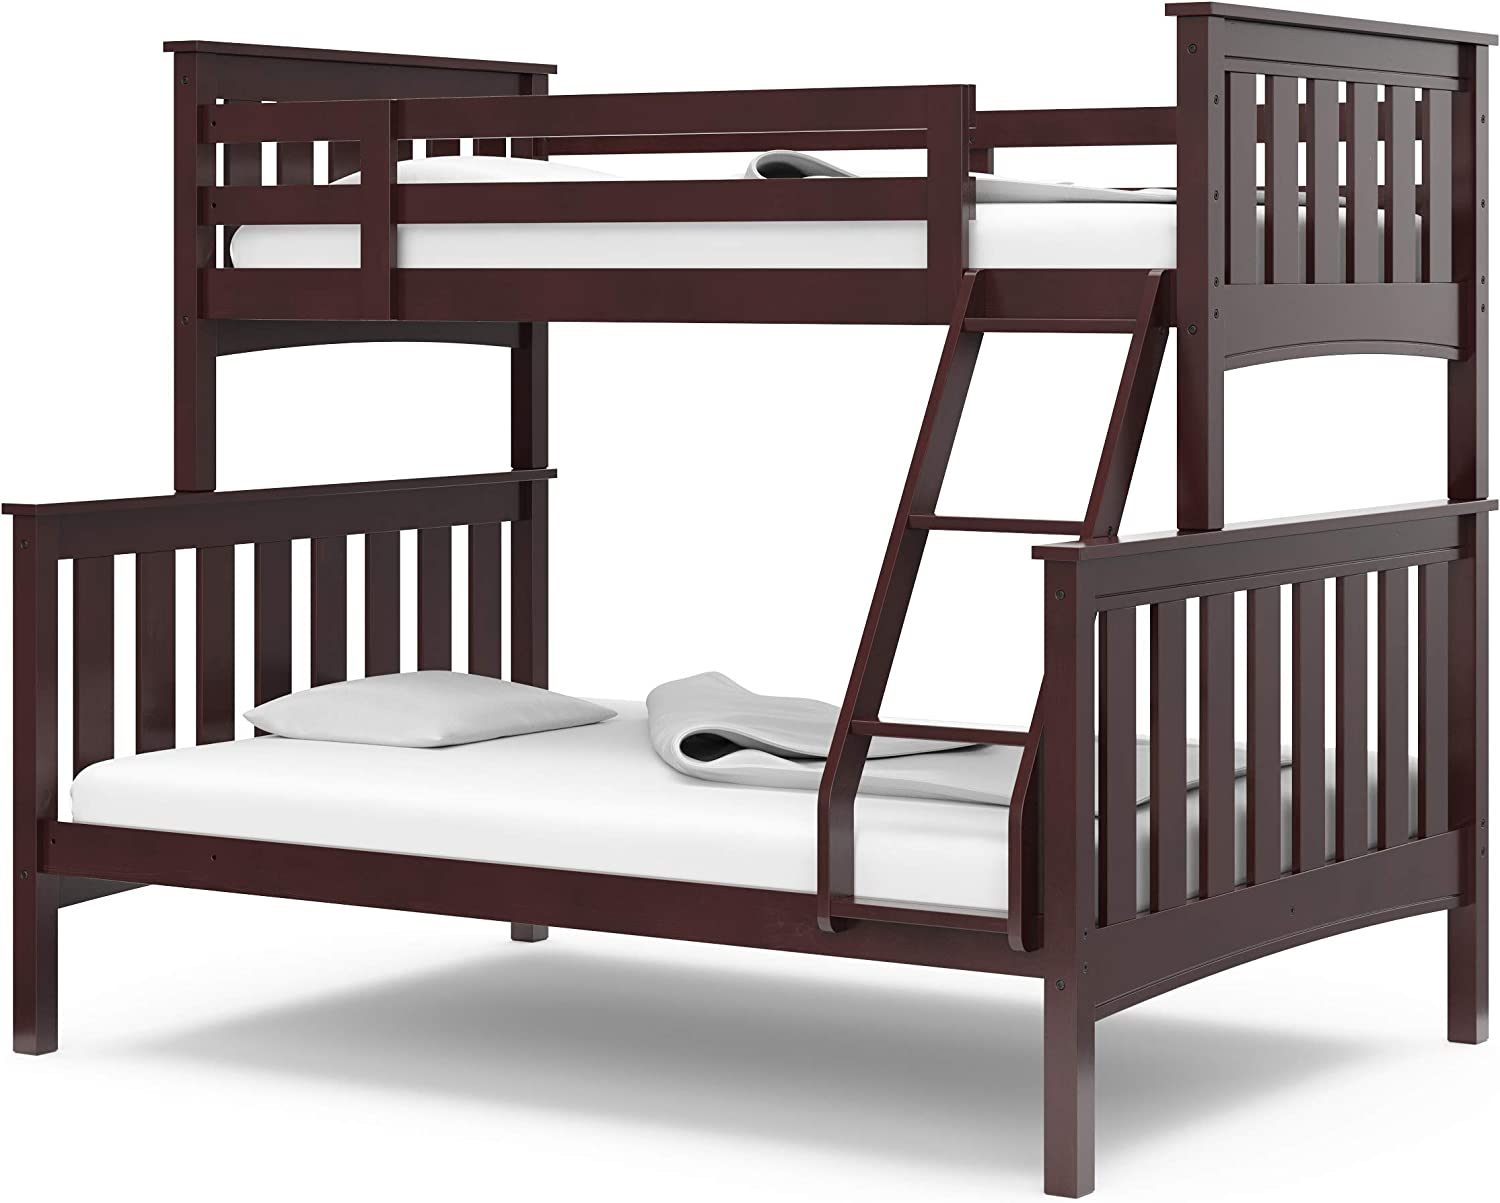 Thomasville Kids Winslow Twin Over Full Bunk Bed, Espresso